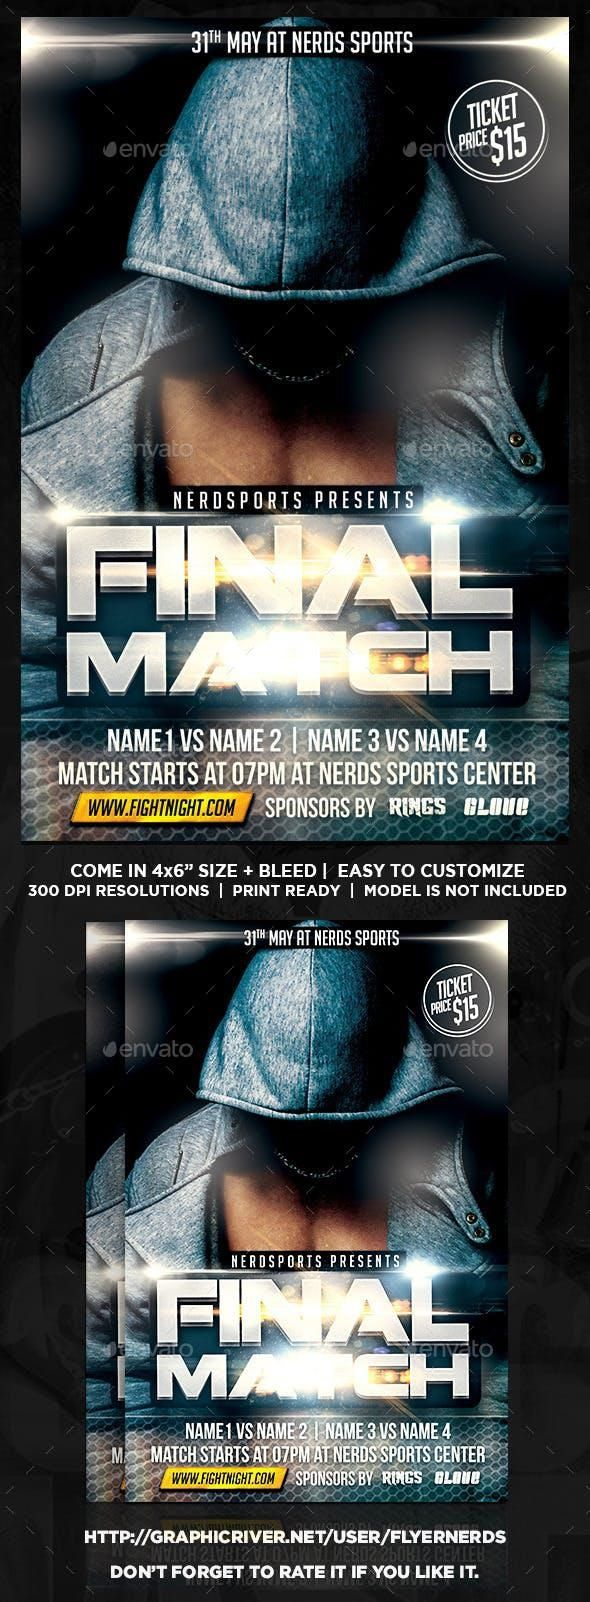 Fight Match Sports Flyer for $7 #PrintTemplate #design #PrintDesign #graphic #DesignSet #EventFlyer #sets #collections #event #SportFlyer #GraphicResources #designs #Envato #template #graphicdesign #flyer #DesignResources #FlyerTemplate #sport #FlyerTemplates